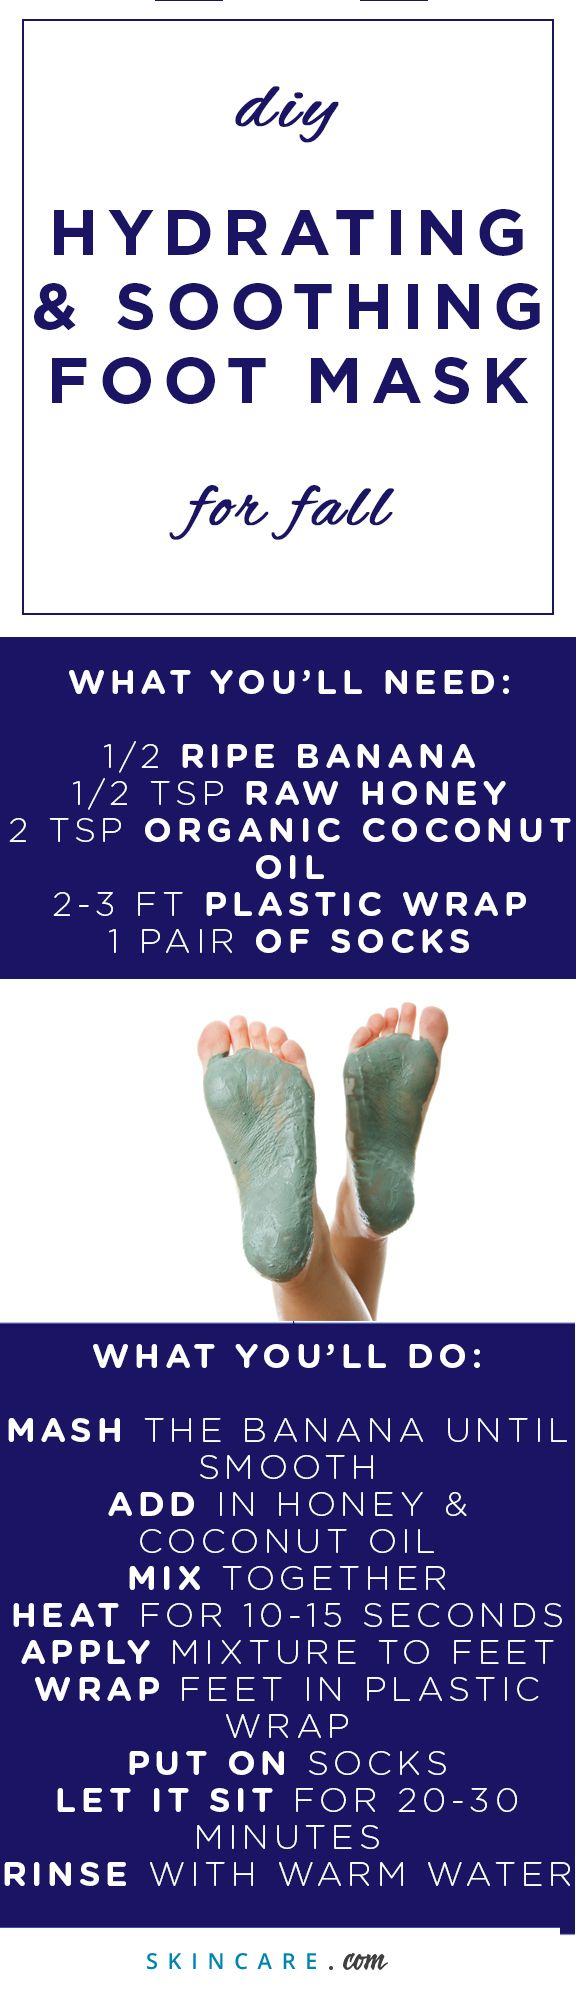 Give the skin on your feet proper care and attention with our DIY moisturizing foot mask. Perfect during a DIY pedicure or spa day, this DIY moisturizing foot mask is packed with skin benefiting ingredients, like organic coconut oil, raw honey, and a ripe banana. Soothe cracked heels and target dry skin with with our DIY moisturizing foot mask, here. | Powered by L'Oréal